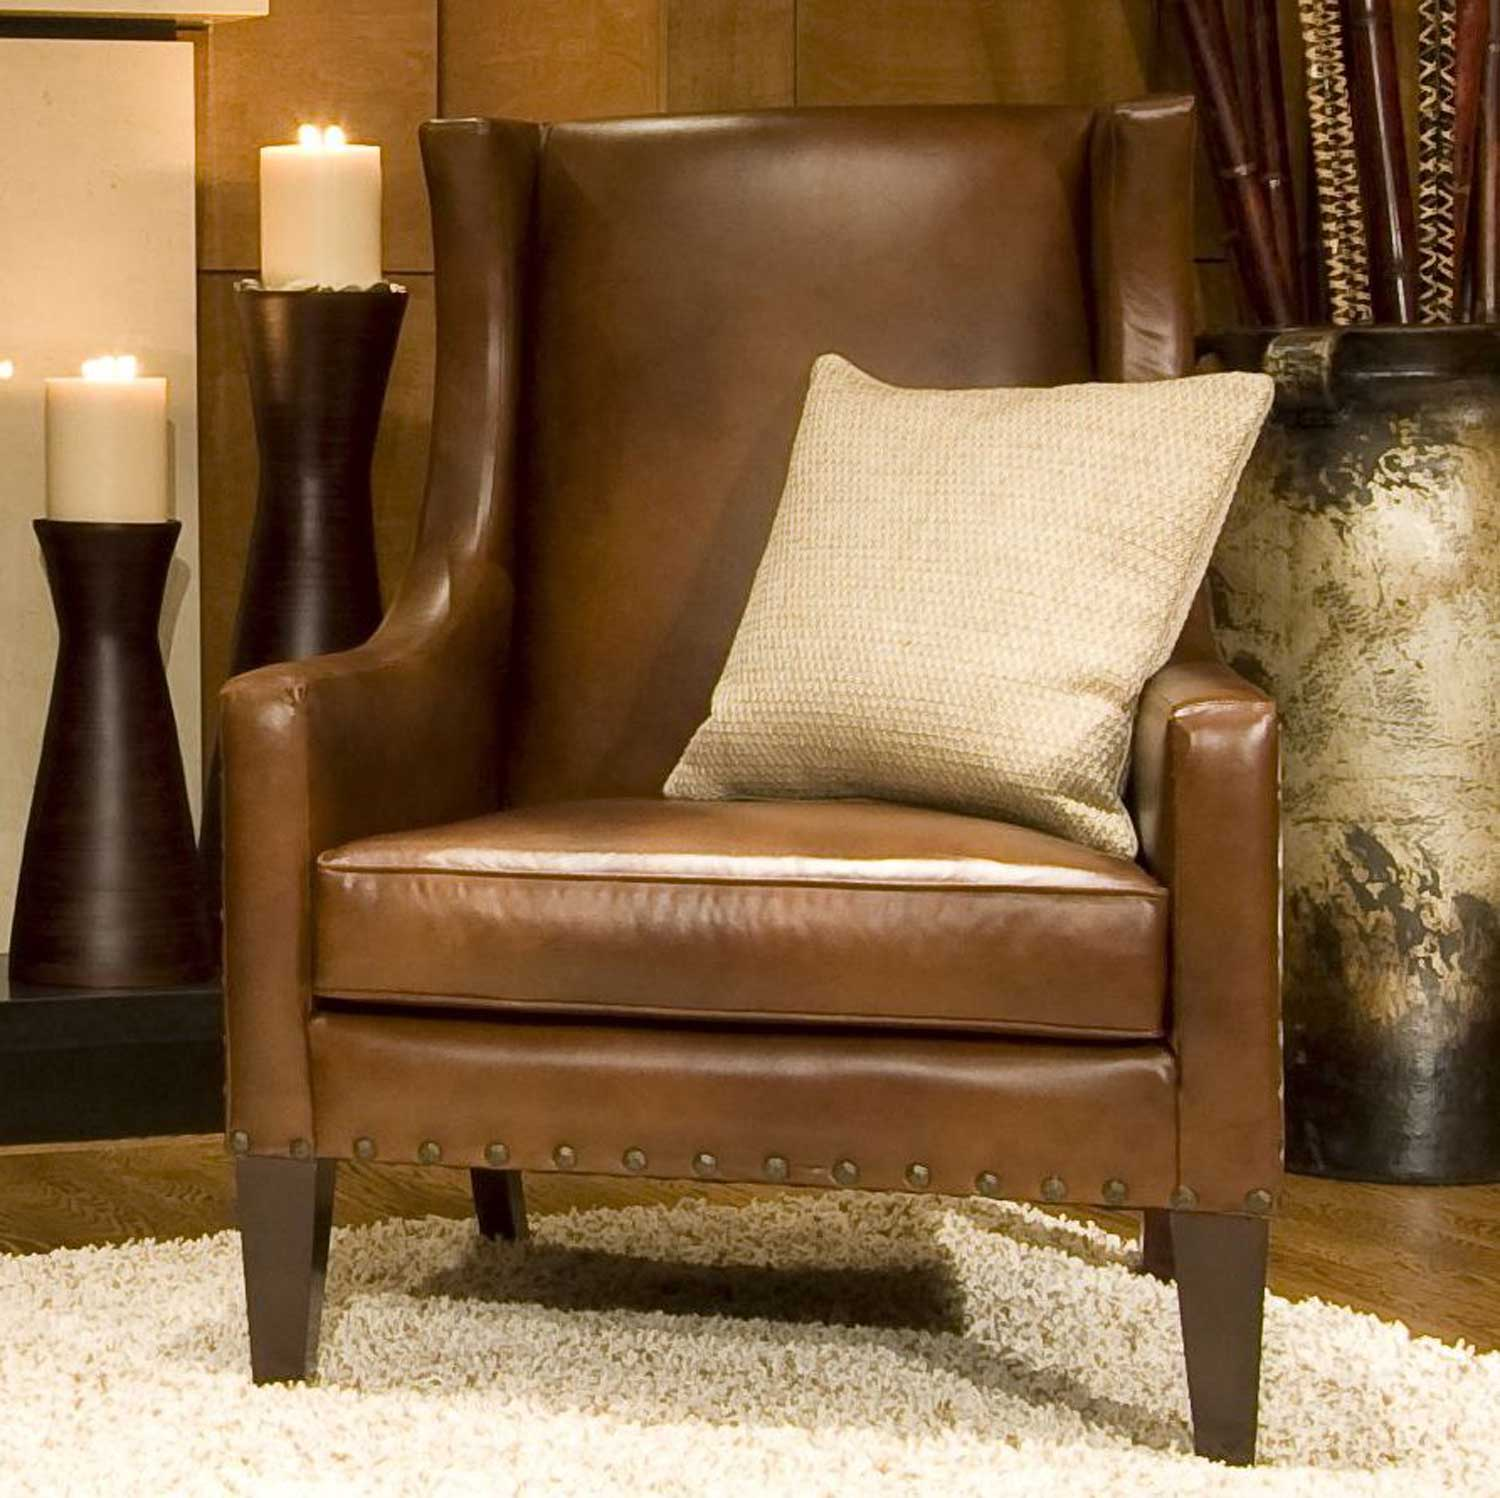 ELEMENTS Fine Home Furnishings Bristol Top Grain Leather Accent Chair - Rustic